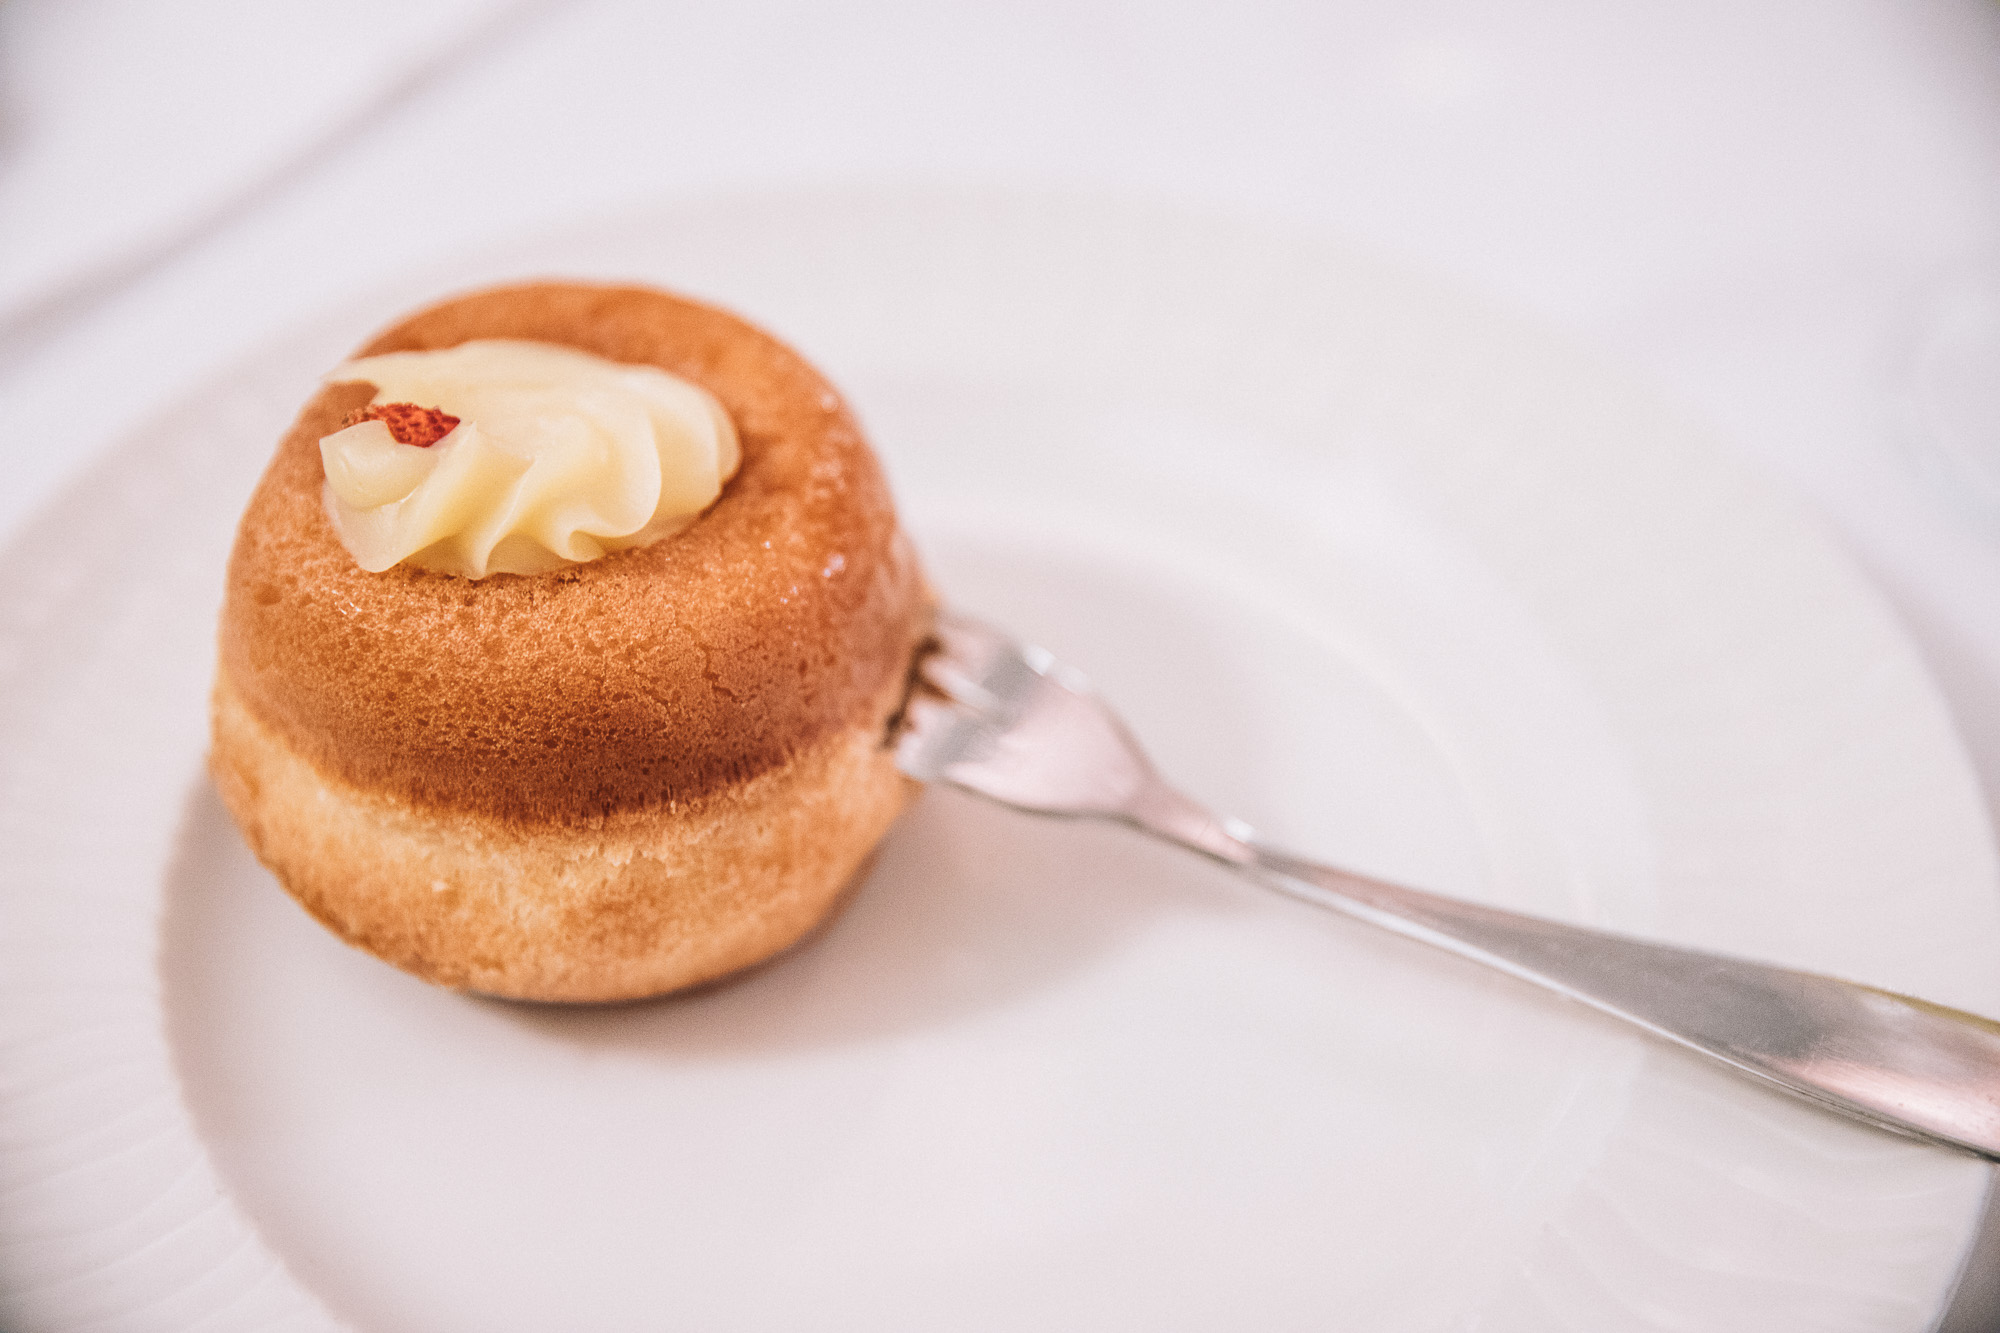 Rum Baba at Mimì all Ferrovia, Naples